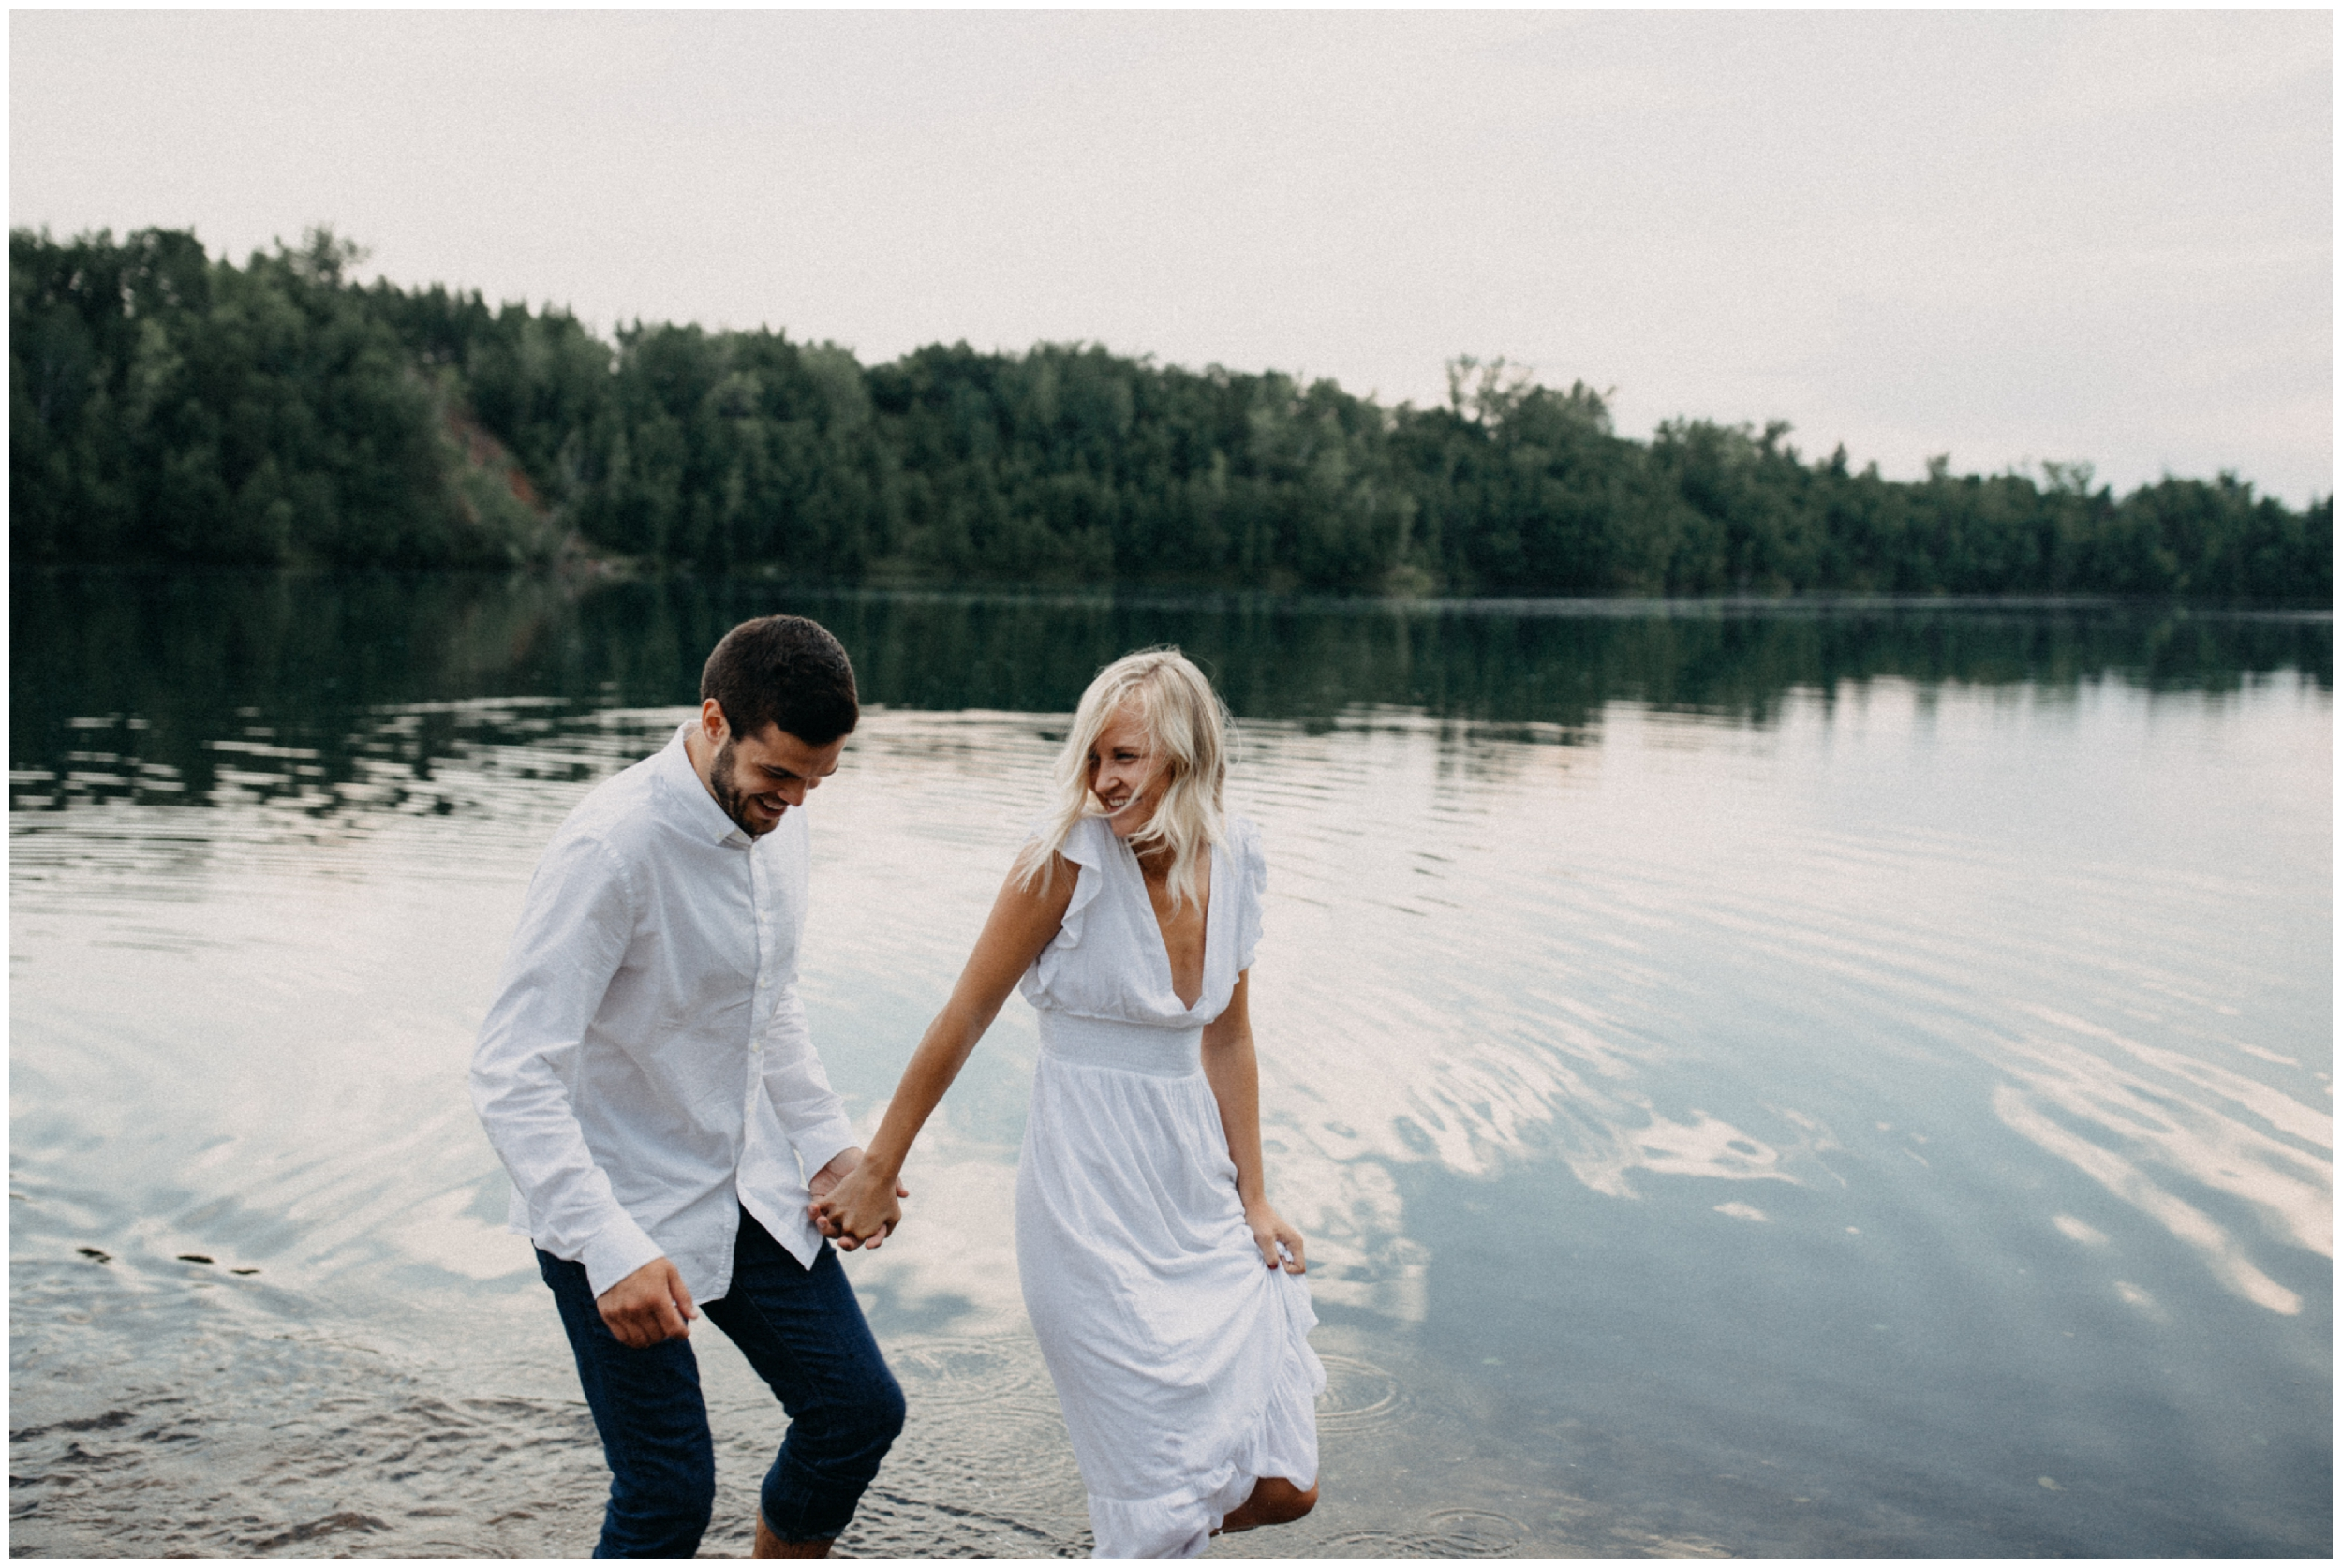 Lakeside engagement session photographed by Britt DeZeeuw